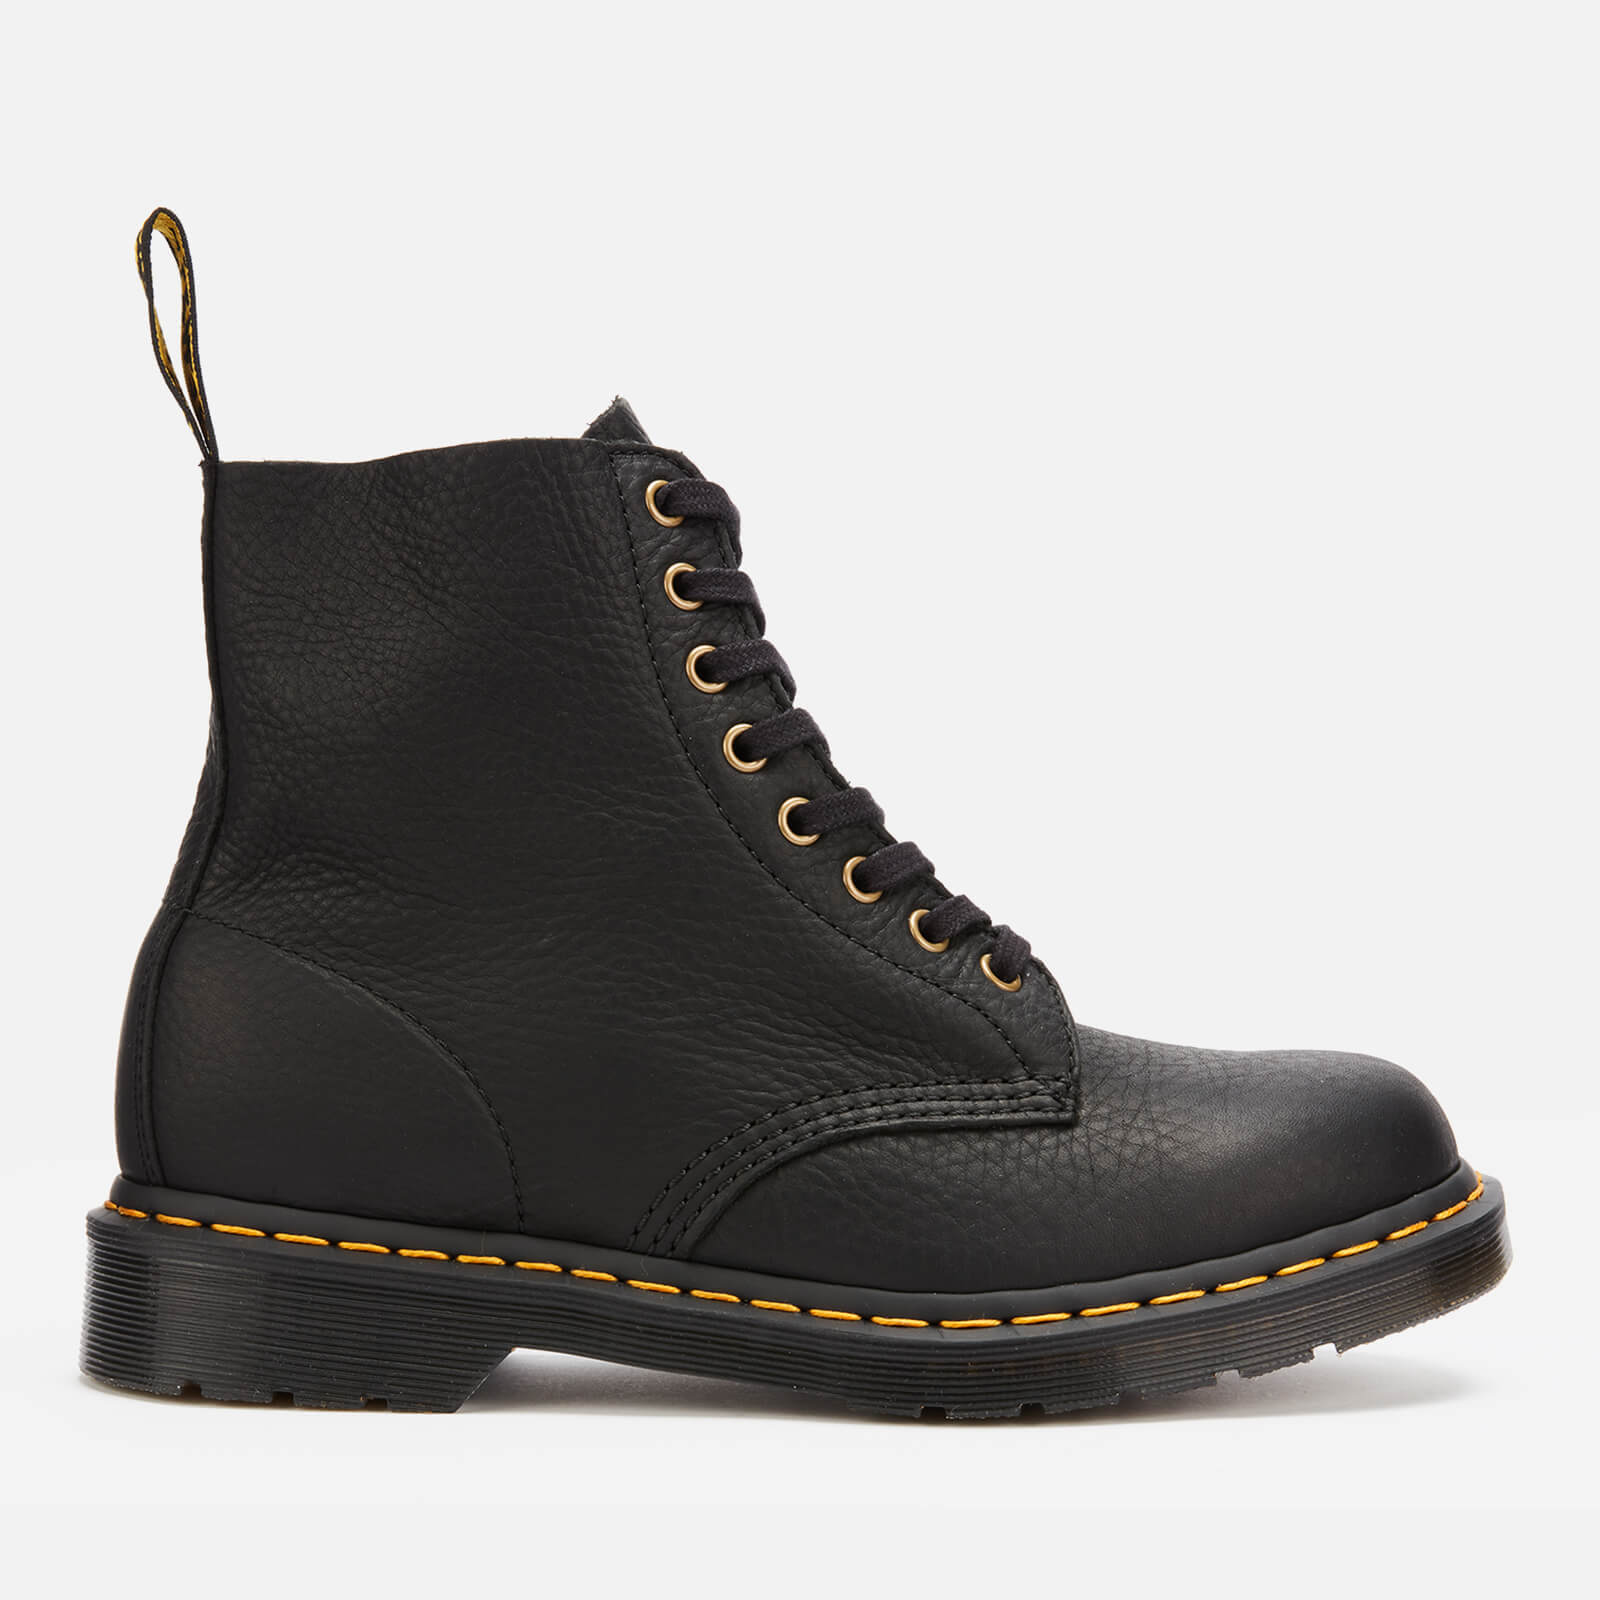 Dr. Martens Men's 1460 Ambassador Soft Leather Pascal 8-Eye Boots - Black - UK 11 - Black from Dr. Martens